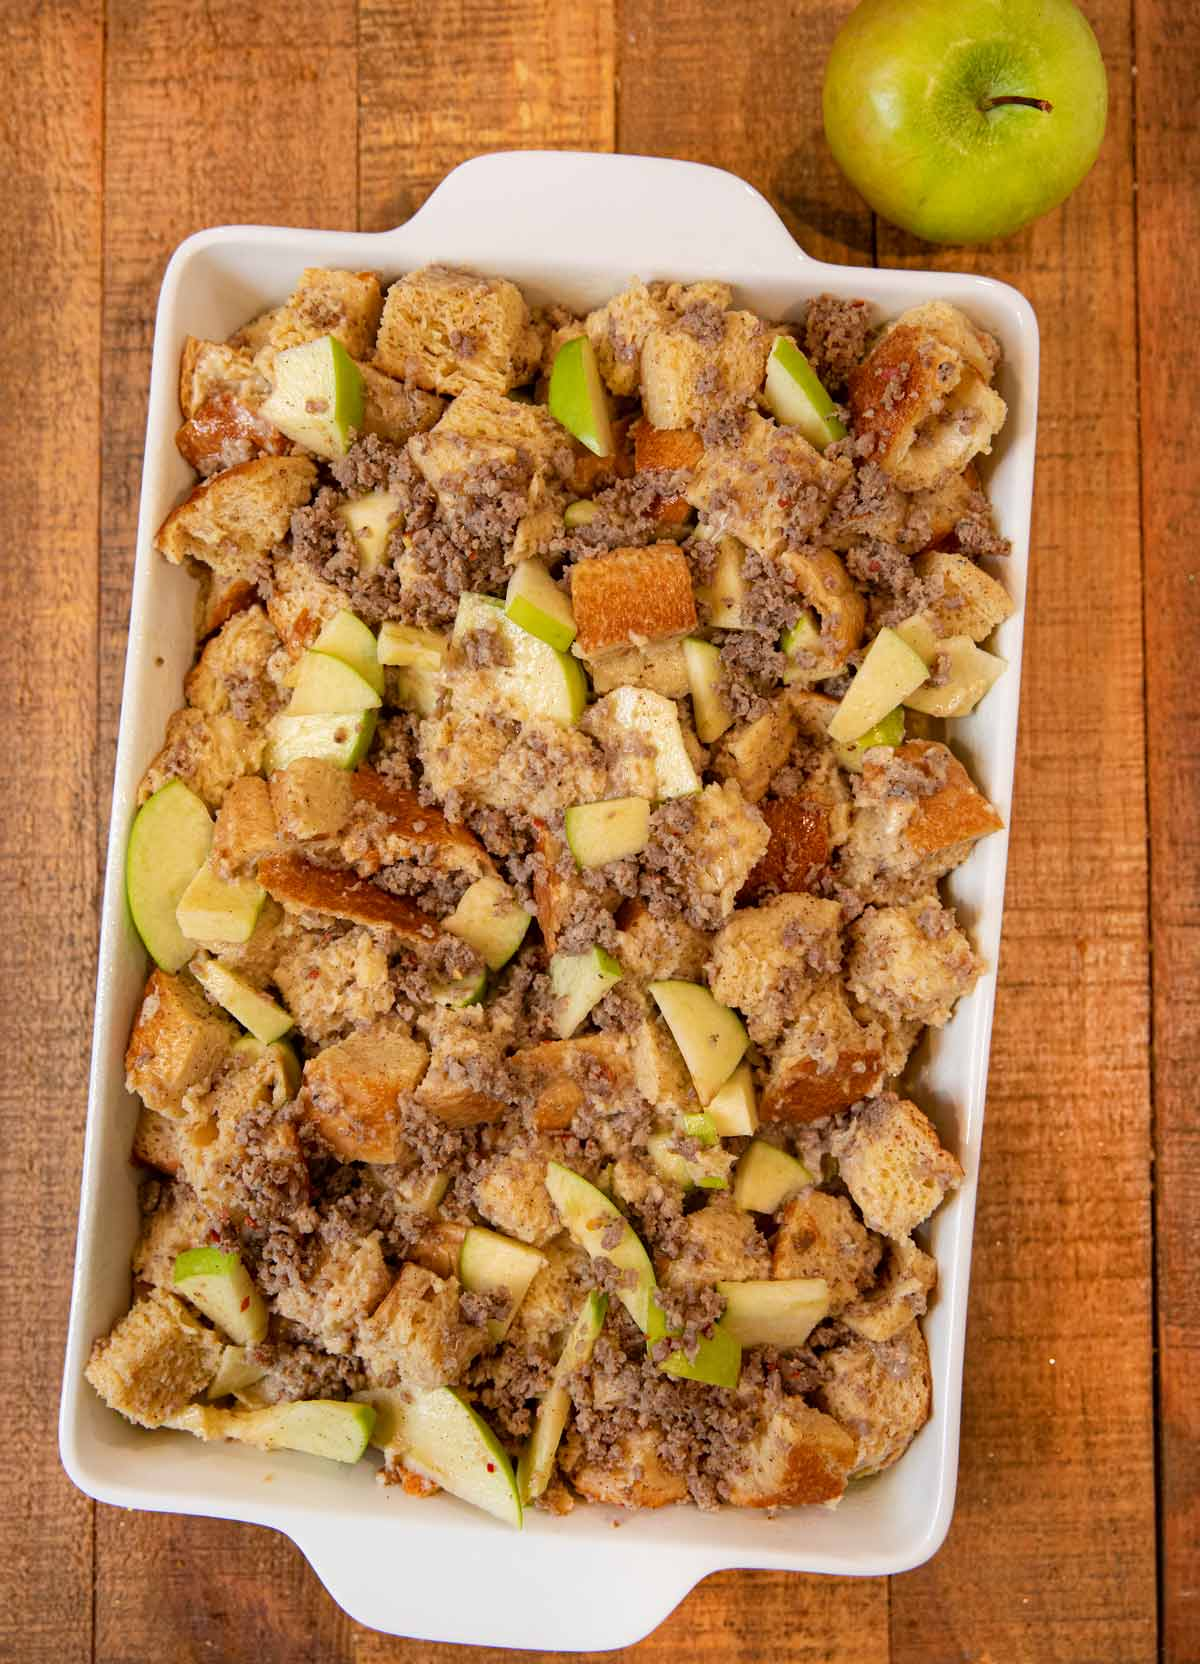 Sausage and Apple Breakfast Bake before baking